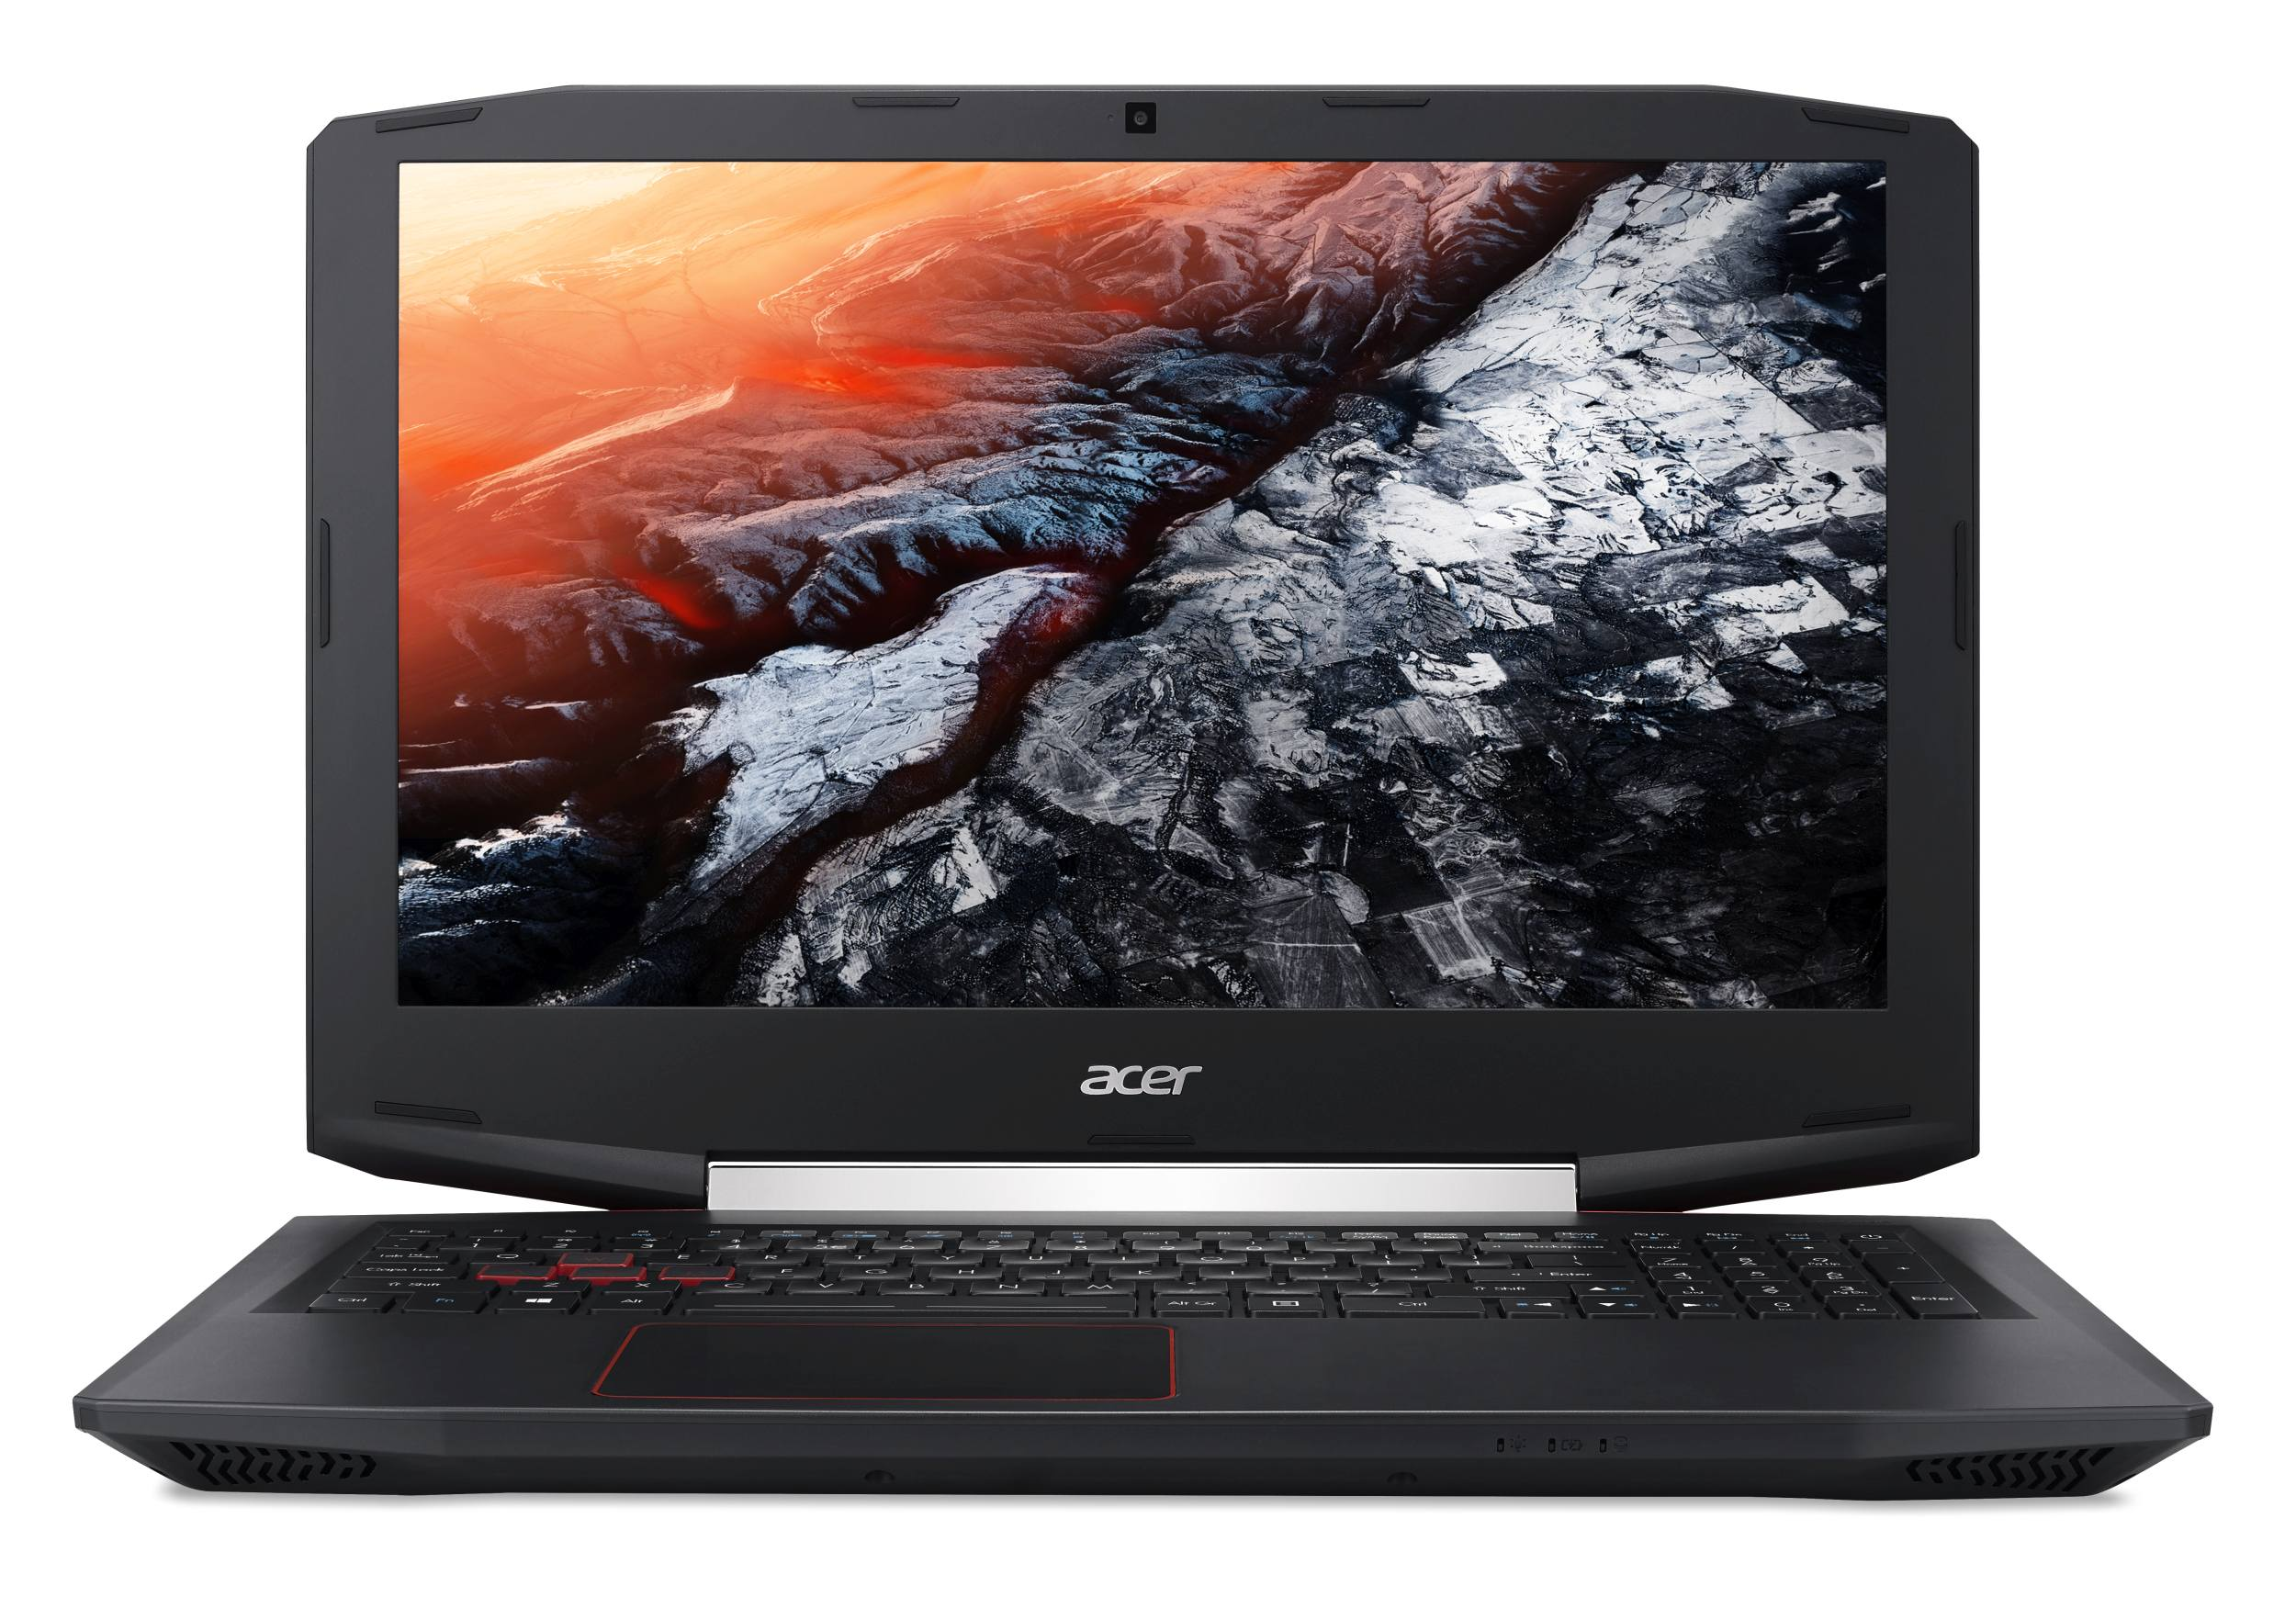 "Acer Aspire VX 15 (VX5-591G-575H) i5-7300HQ/8GB+N/256 SSD/GTX 1050Ti 4GB/15.6"" FHD IPS LED matný/BT/W10 Home/Black"